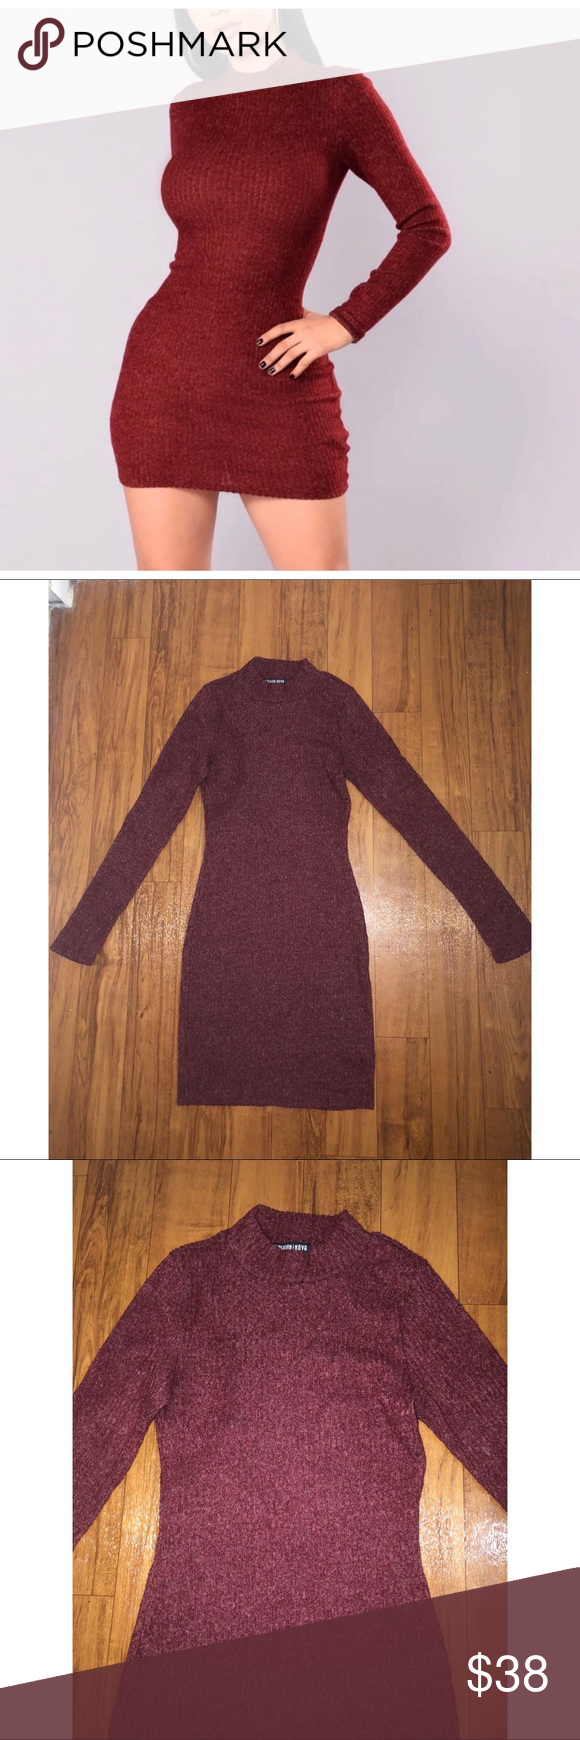 Fashion nova burgundy sweater dress small Excellent condition  Never worn it / clean my closets out  True size small  Beautiful color burgundy perfect for fall Fashion Nova Dresses Mini    Source by katerina6676 #Burgundy #burgundy Sweater Dresses #condition #Dress #Excellent #fashion #nova #Small #sweater #worn